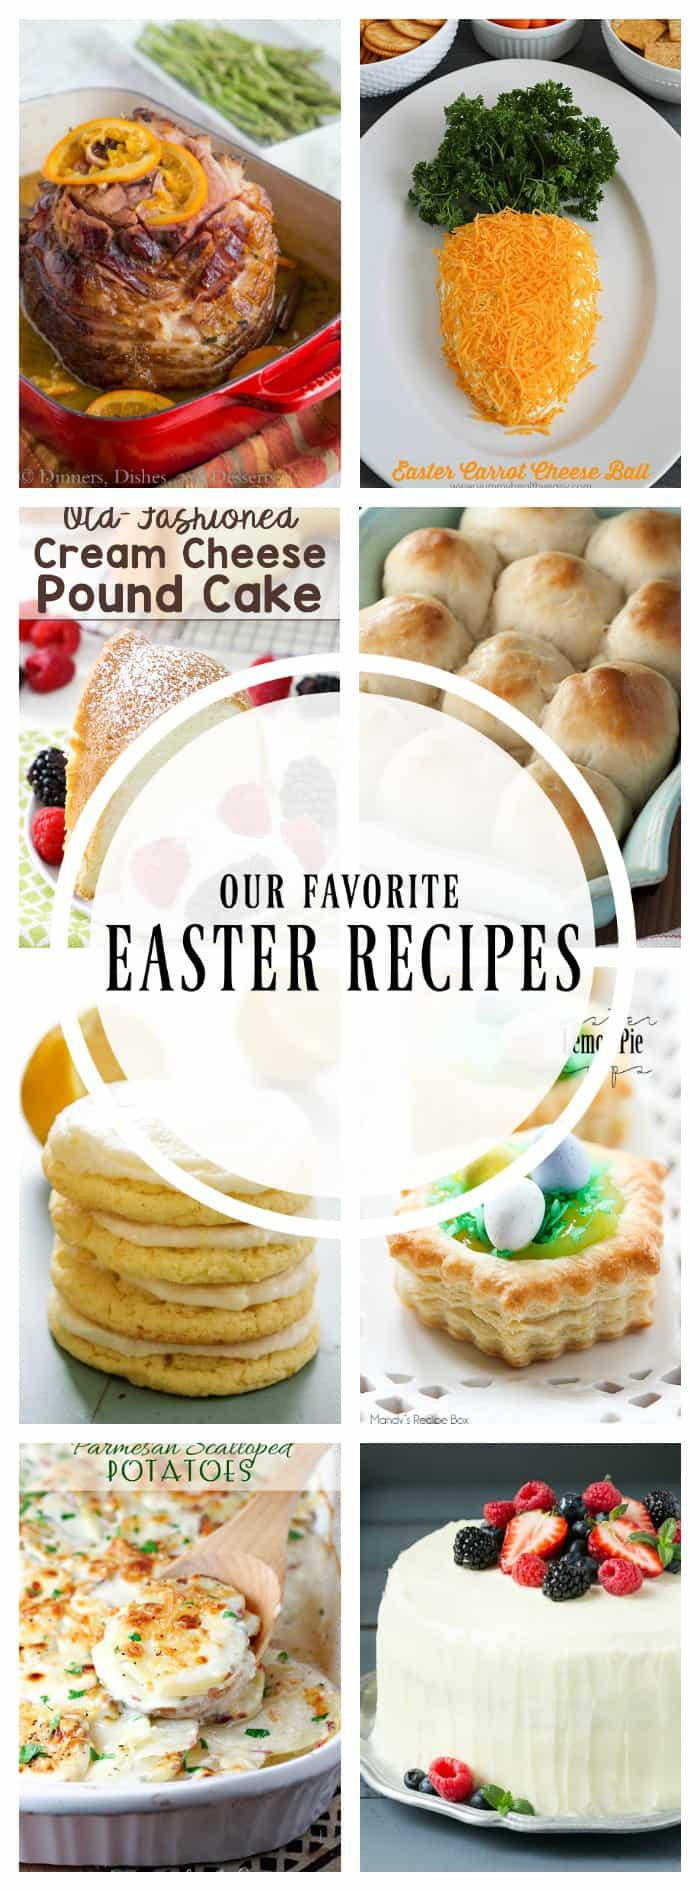 Let our favorite recipes for Easter help you as you plan your holiday meal!  Entertaining will be so simple and tasty this year!